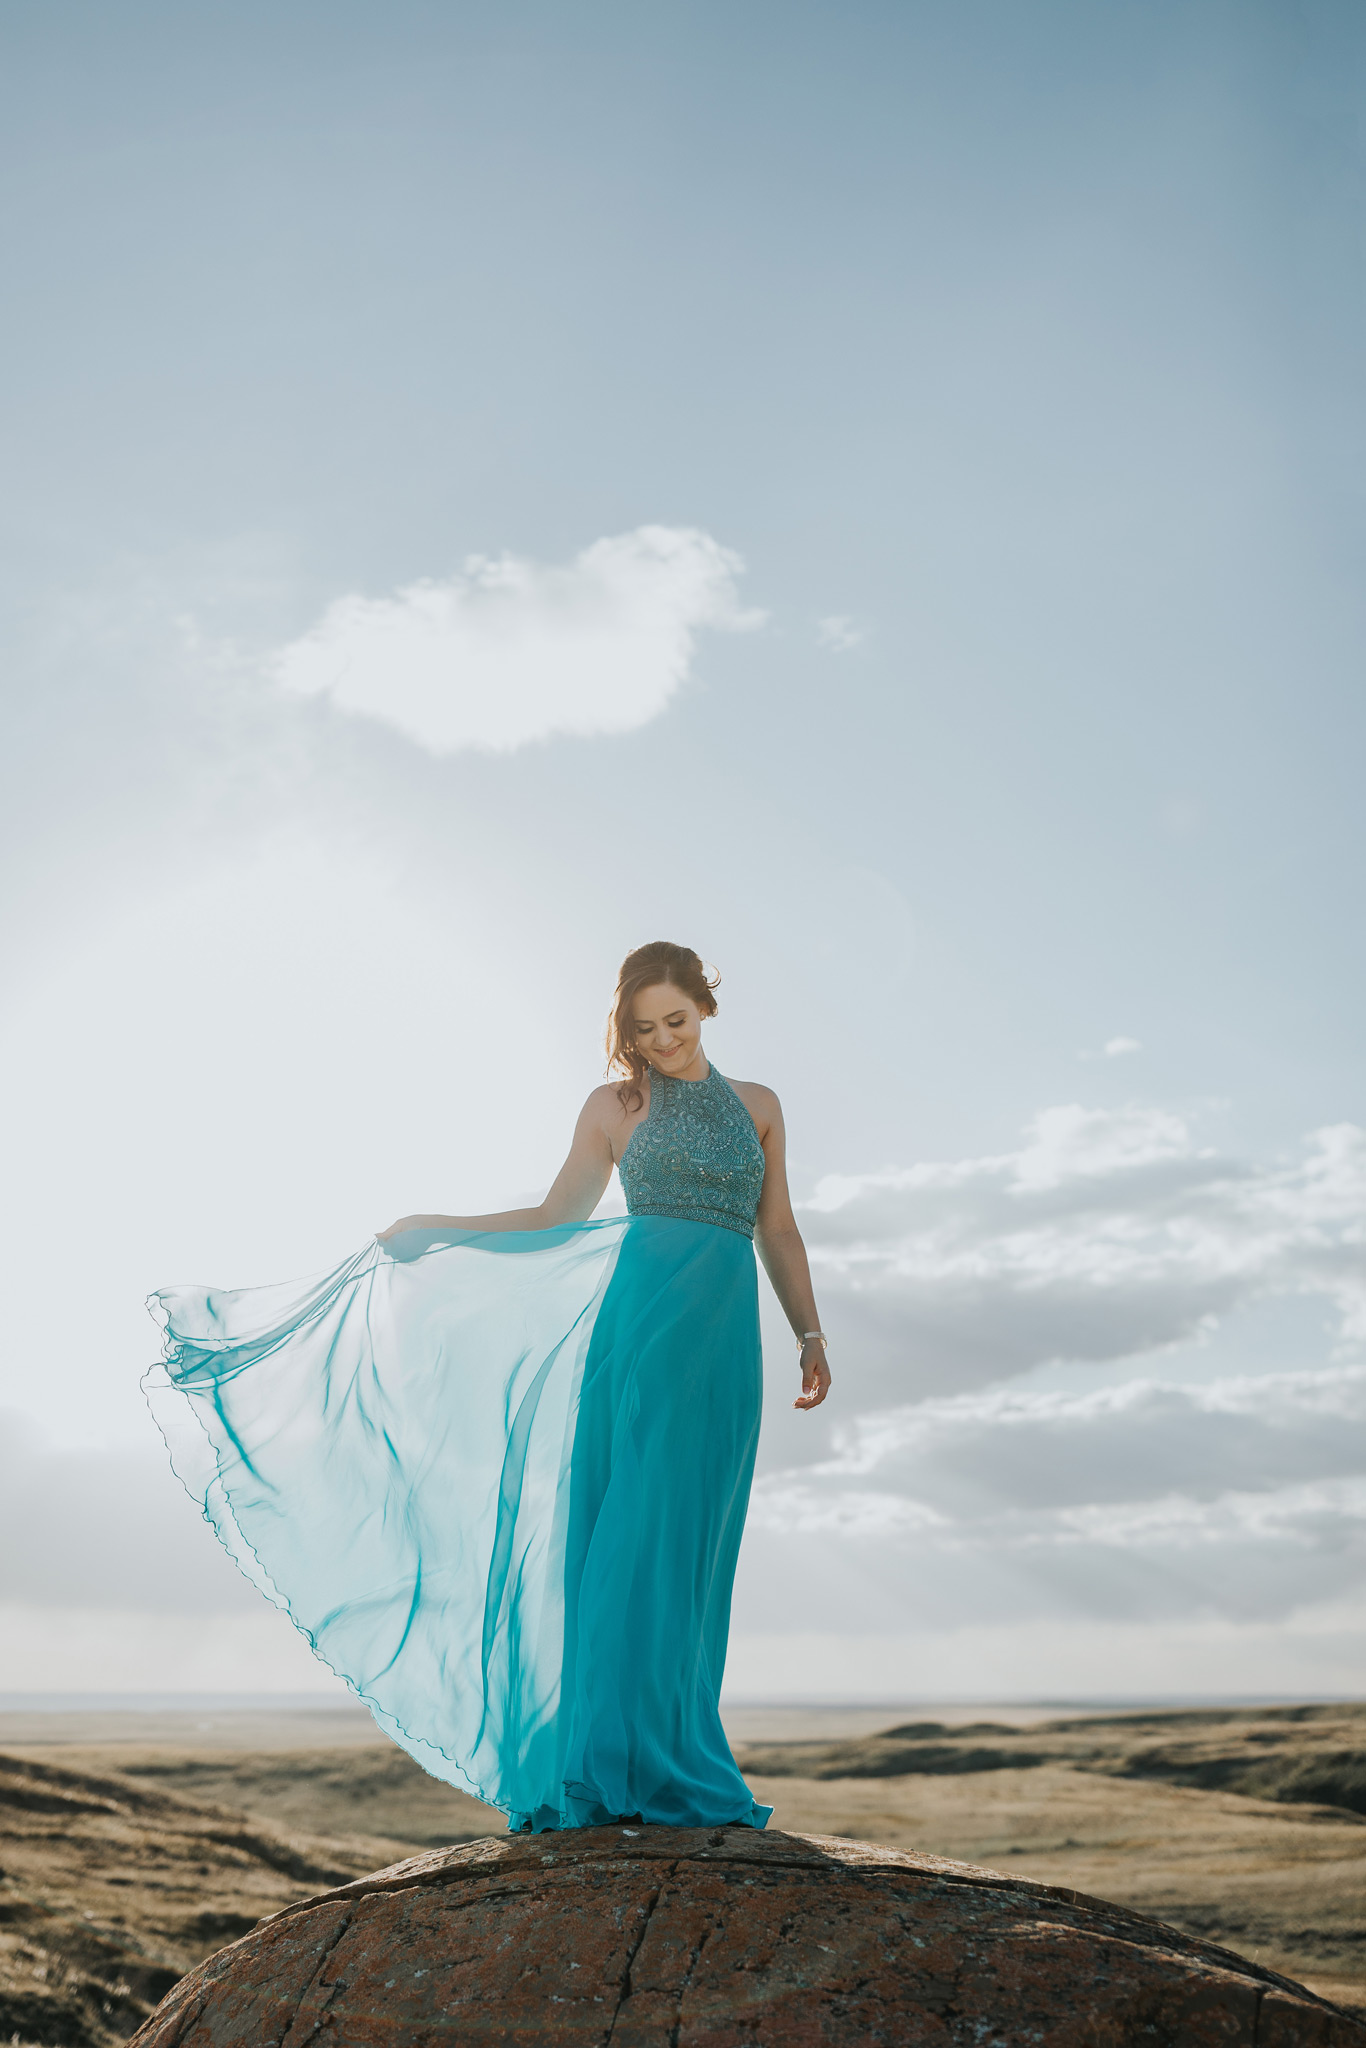 girl standing on large rock prom dress blowing in the wind